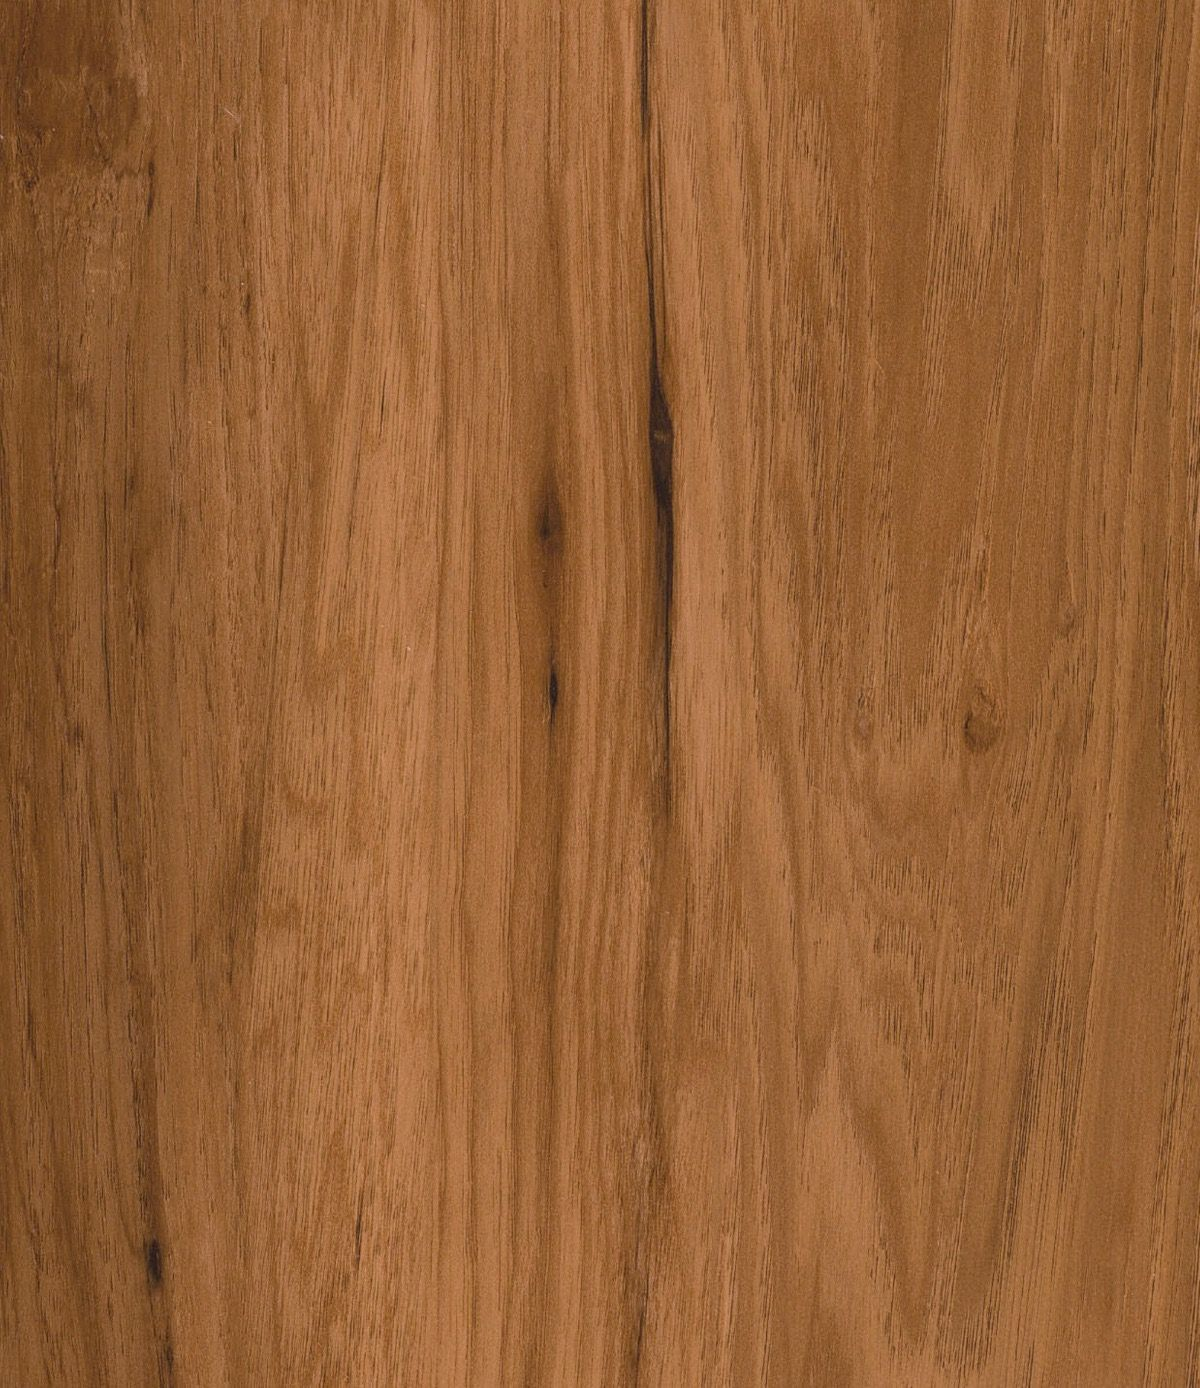 Cabinets To Go Xrp Flooring Samples Flooring Cabinets To Go Flooring Options